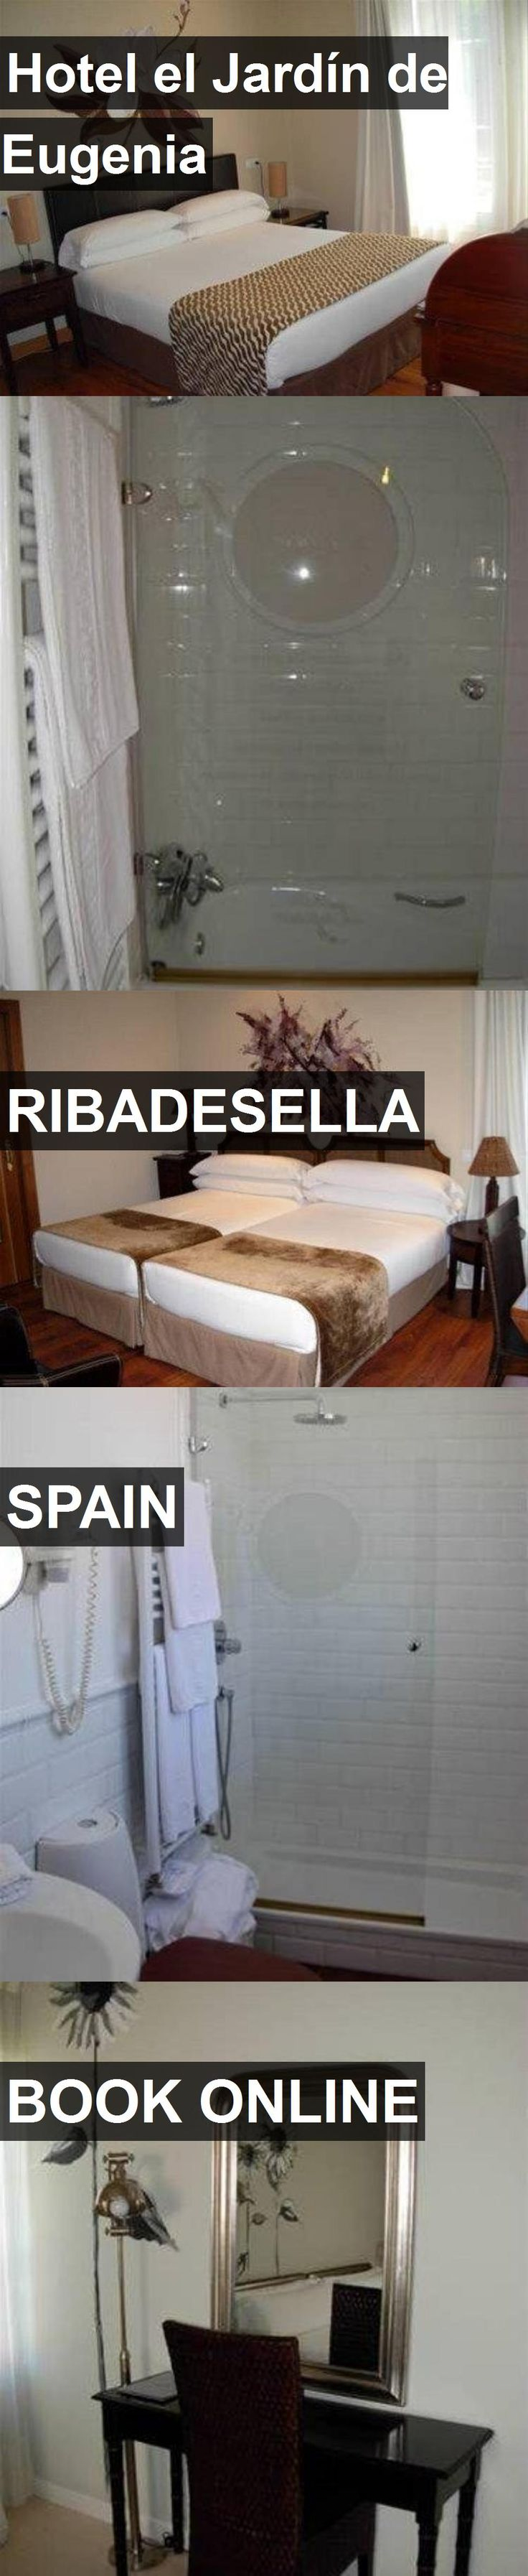 Hotel Hotel el Jardín de Eugenia in Ribadesella, Spain. For more information, photos, reviews and best prices please follow the link. #Spain #Ribadesella #HotelelJardíndeEugenia #hotel #travel #vacation